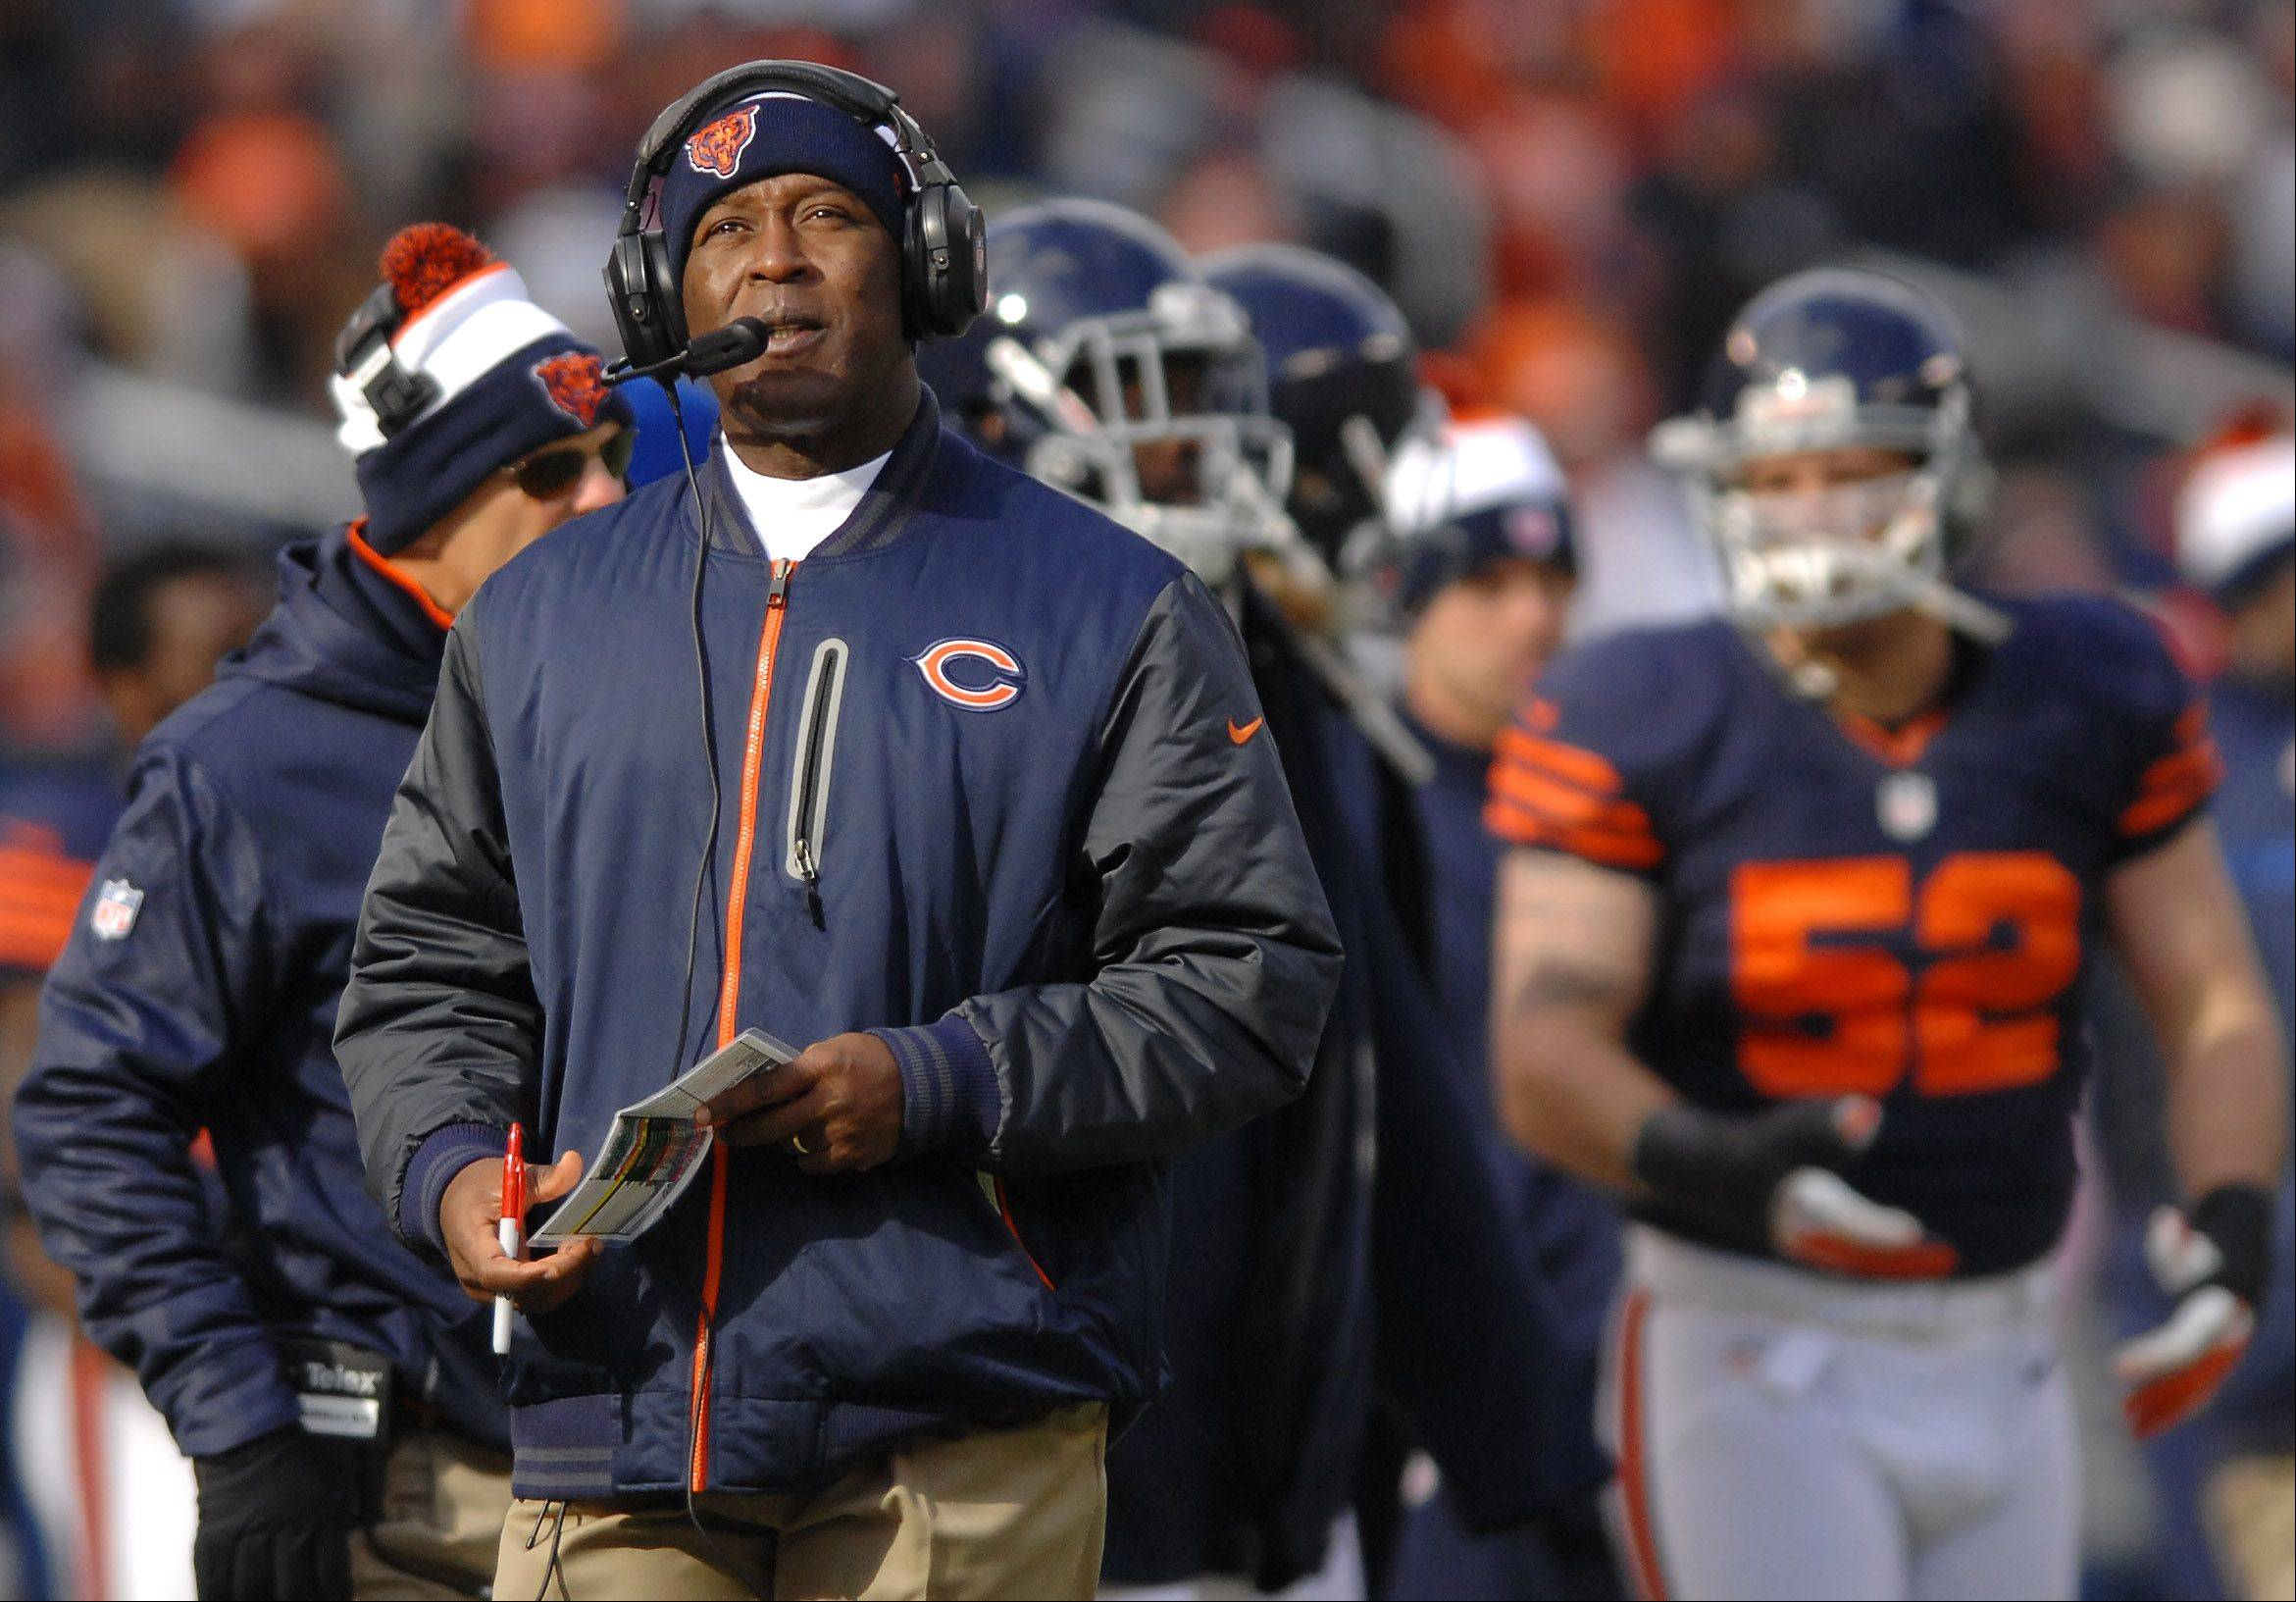 Bears head coach Lovie Smith says Jay Cutler is improving, but he won�t practice or play until doctors say he�s completely healed and ready.